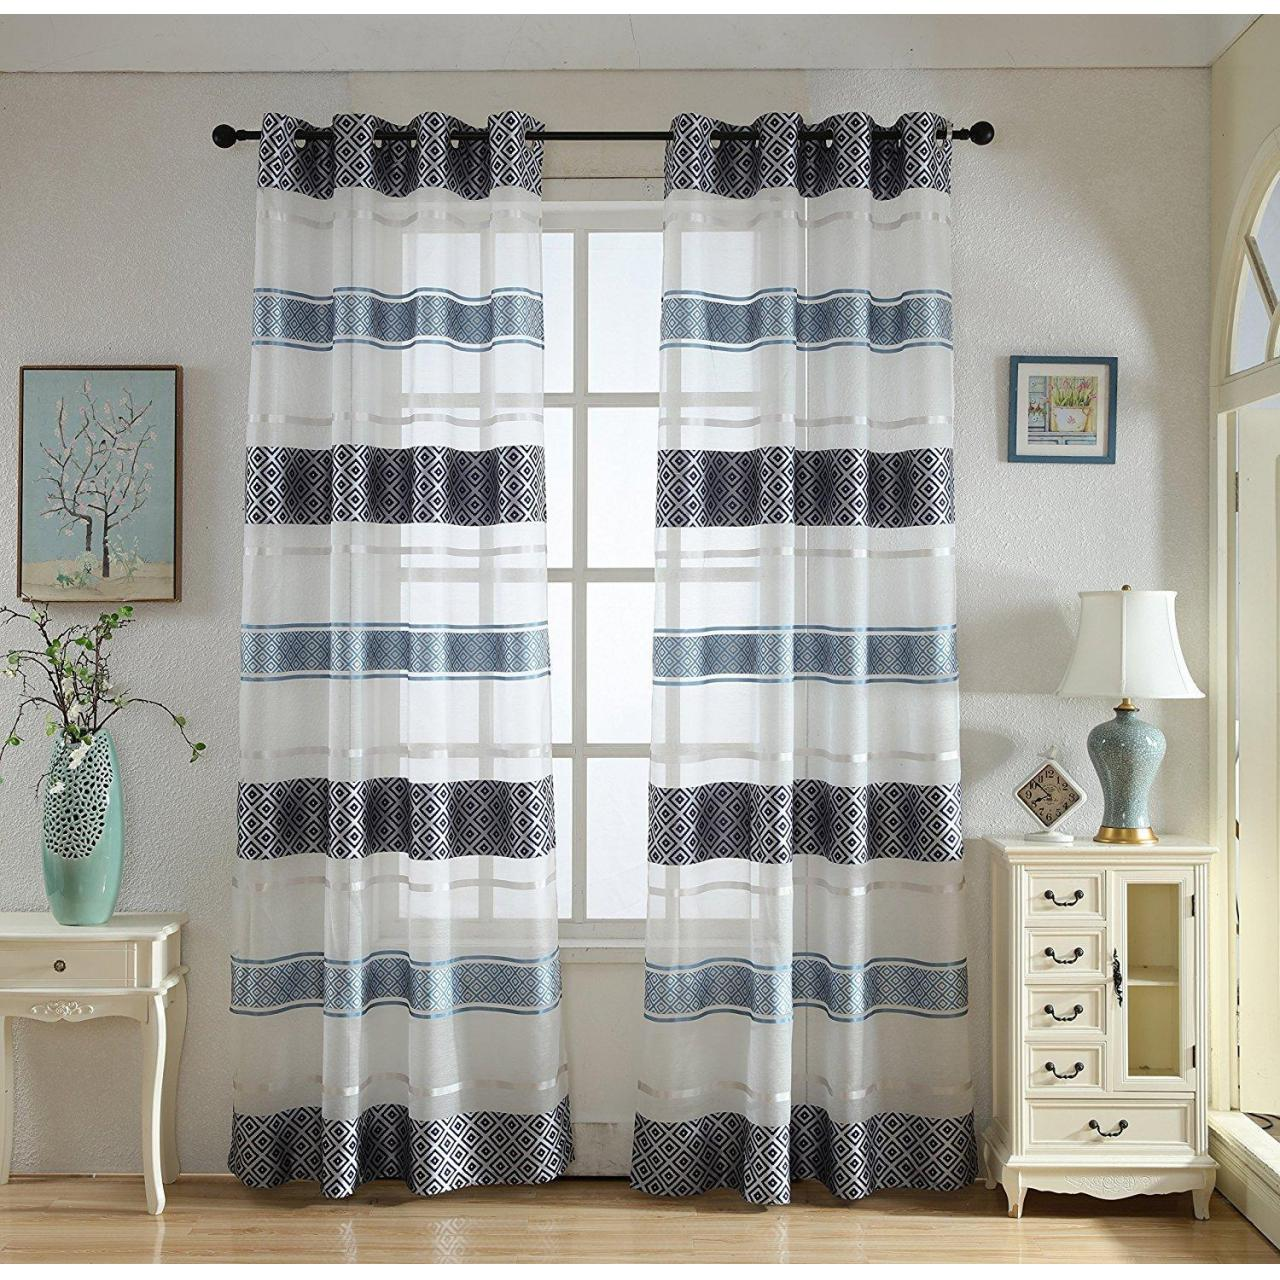 Buy cheap Decorative Stylish Sheer Curtains with Grommets 2 Panels , Flowy Style | Colorful, Silky Window Drap from wholesalers